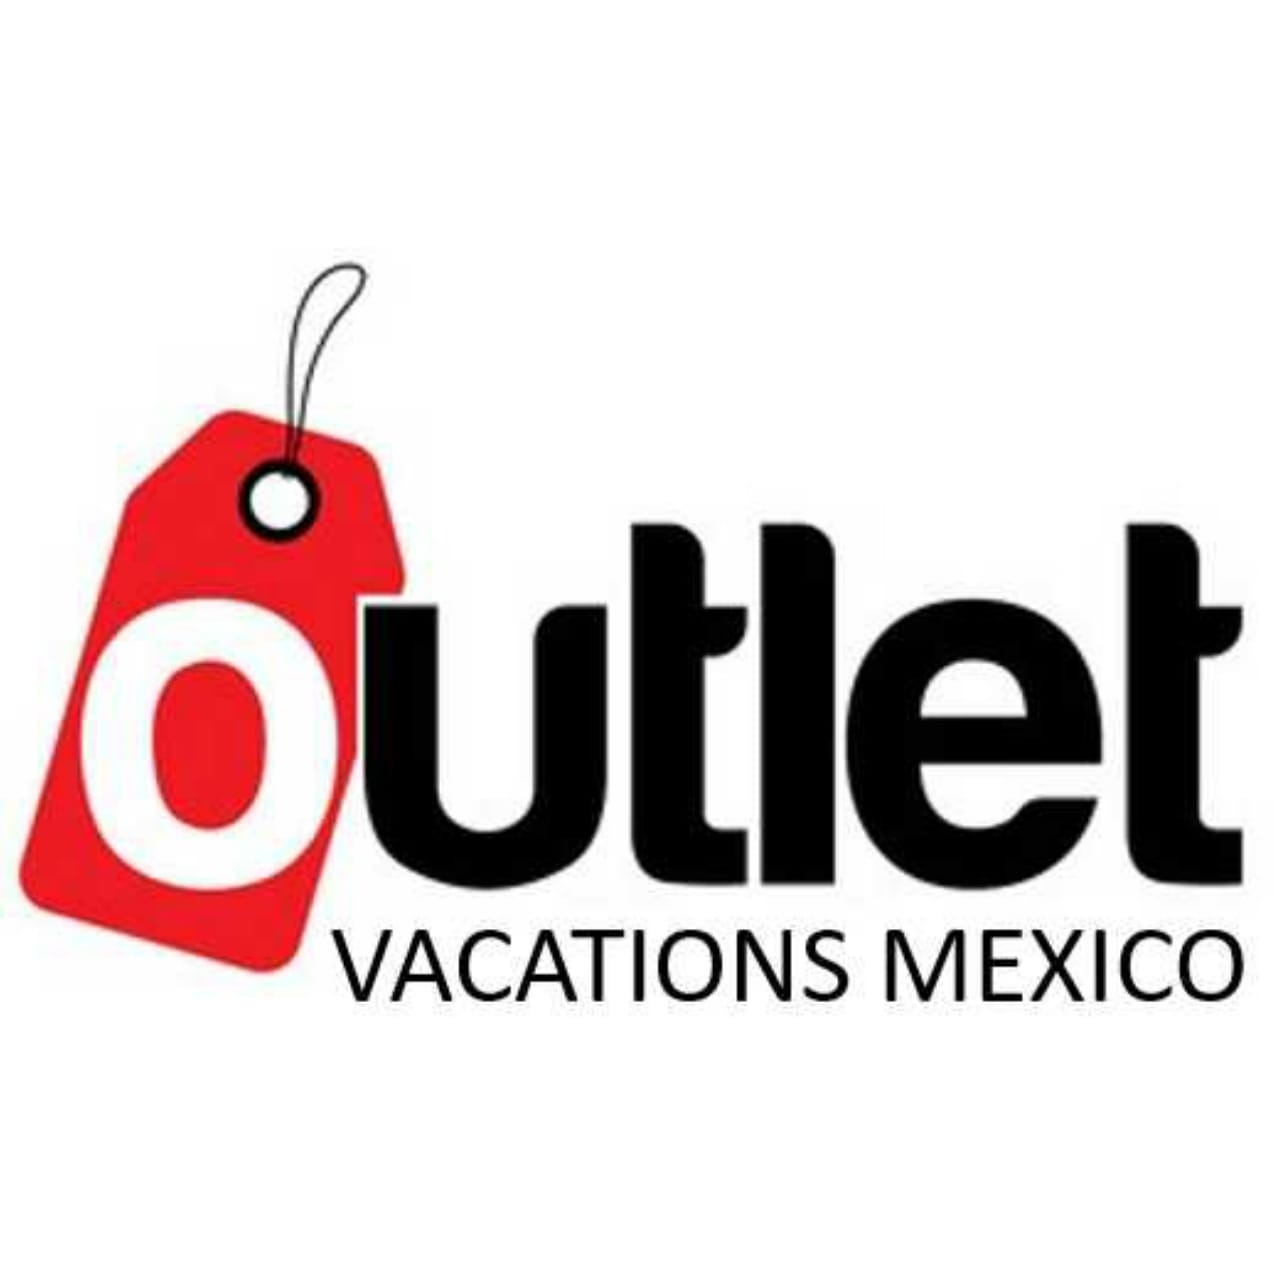 Outlet Vacations Mexico